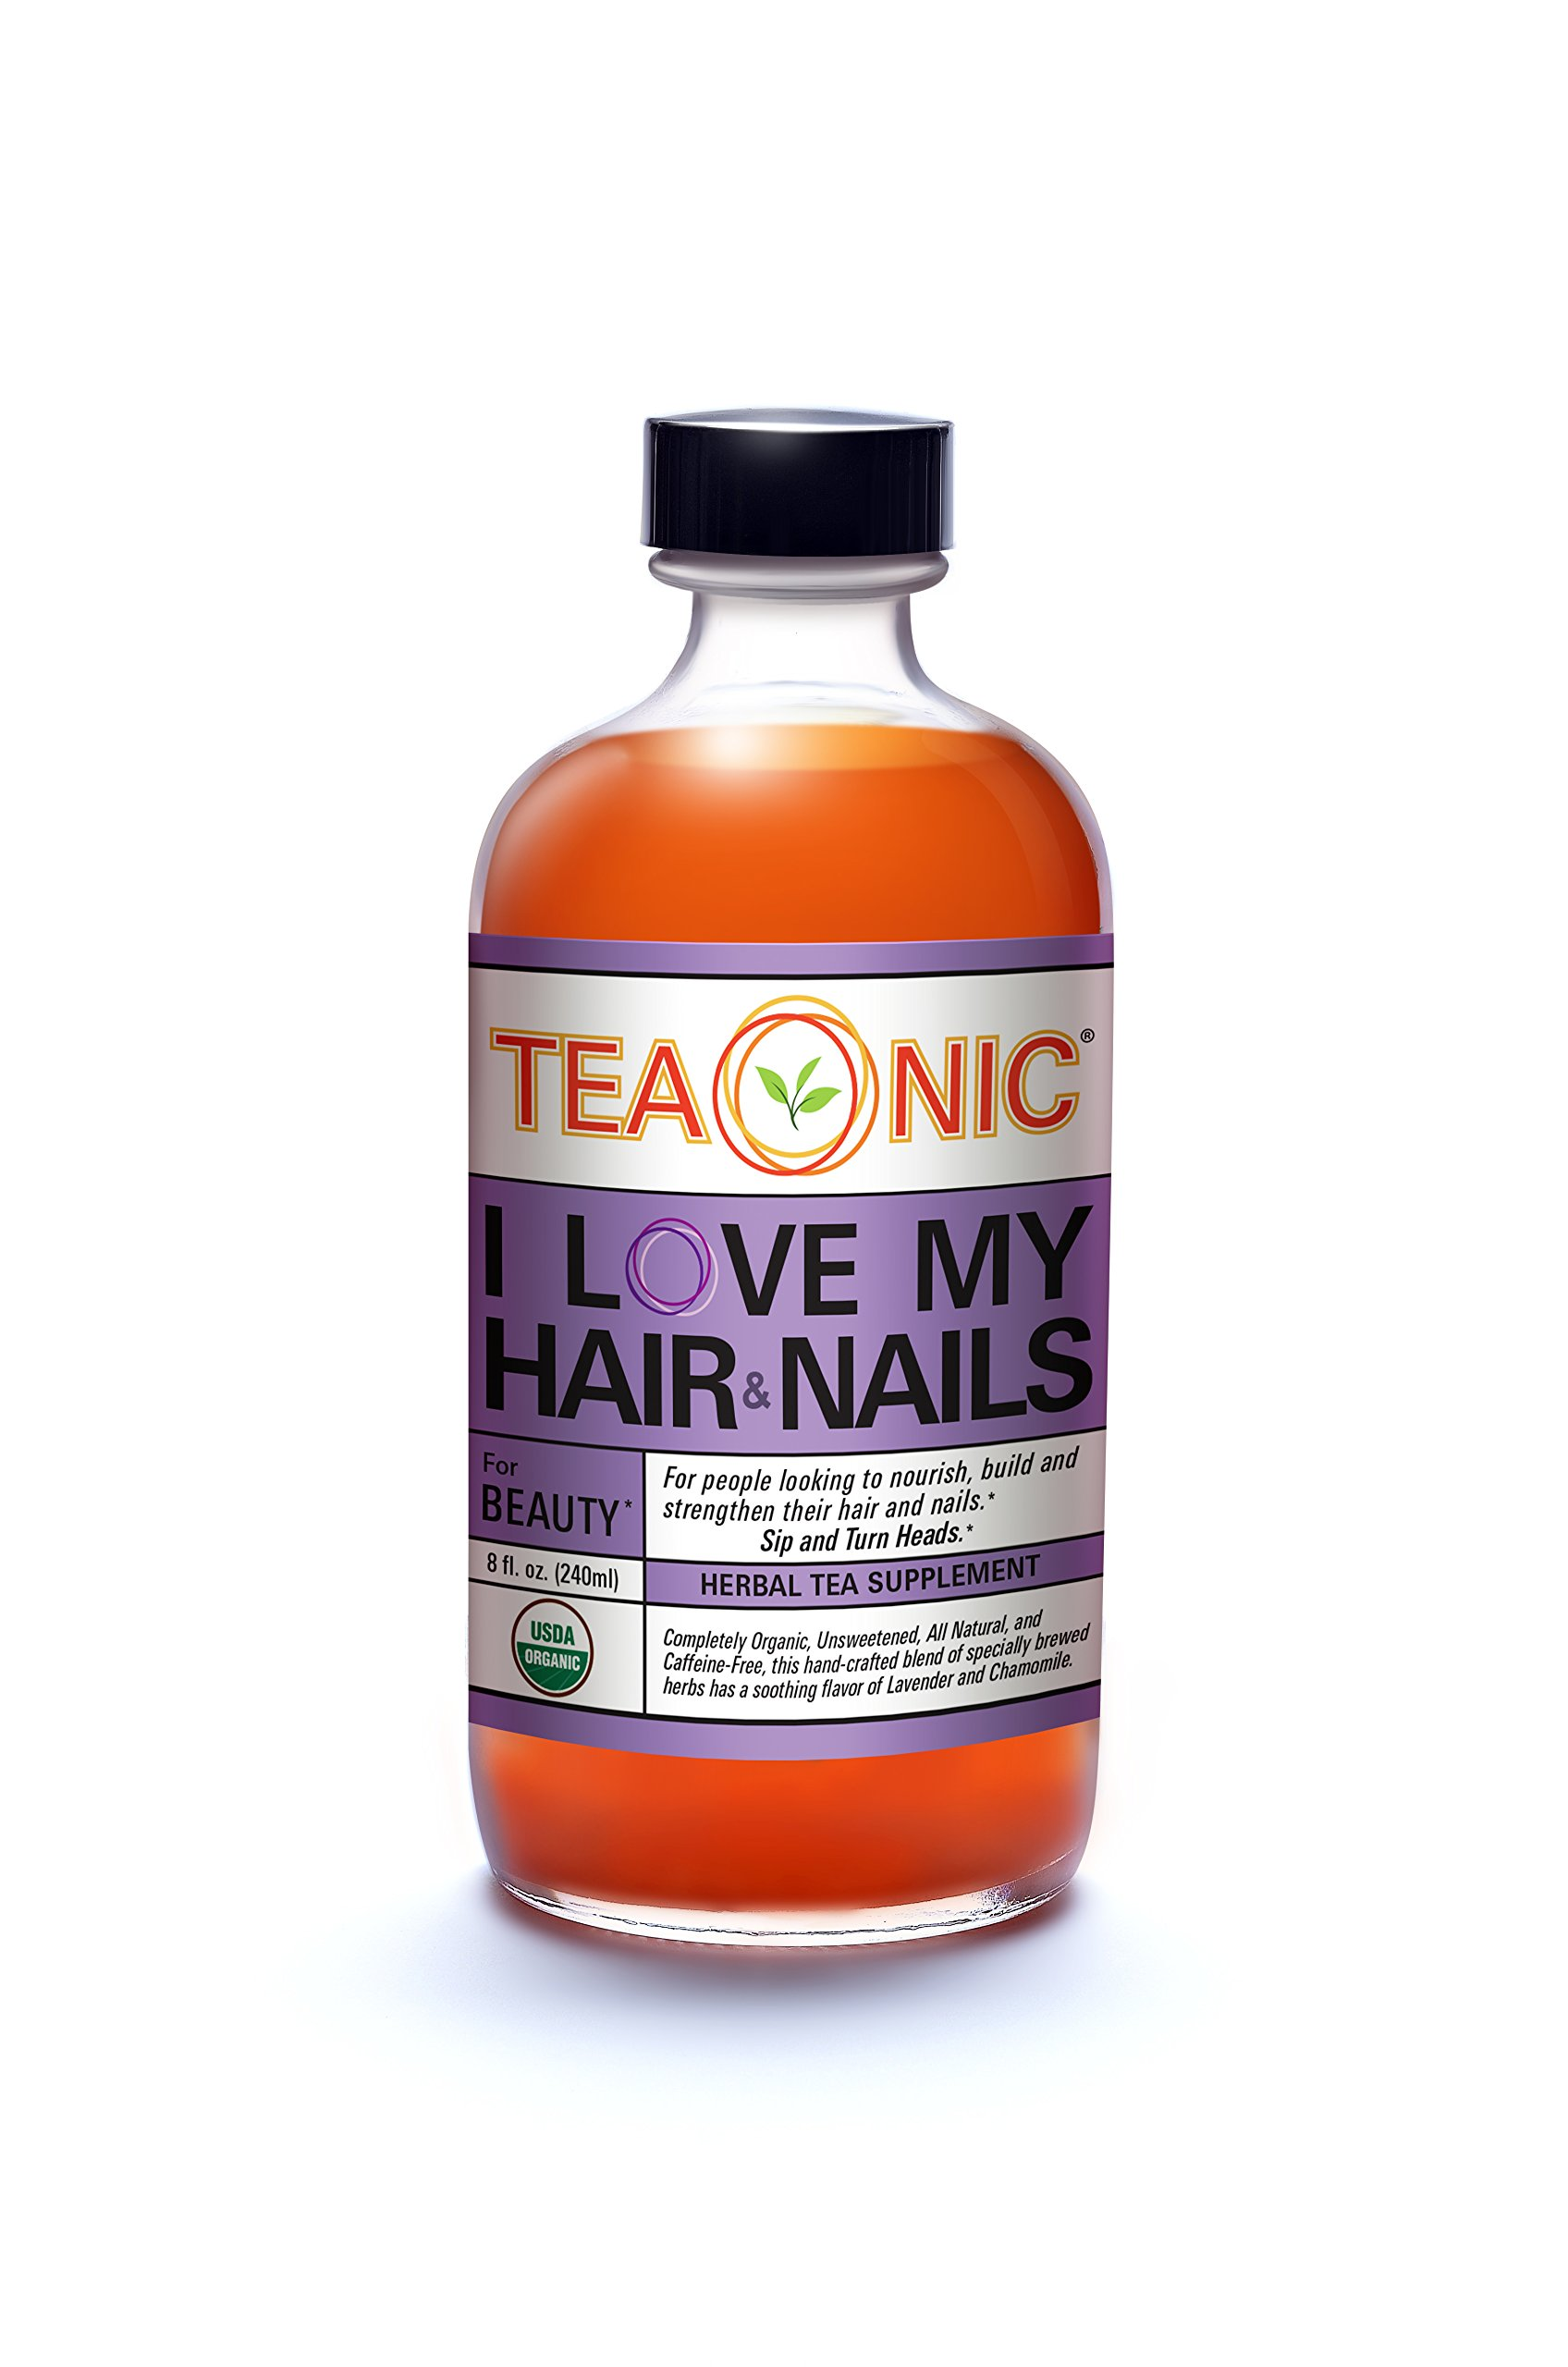 Teaonic Herbal Tea I Love My Hair & Nails for Beauty   Chamomile & Lavender (12 Pack)